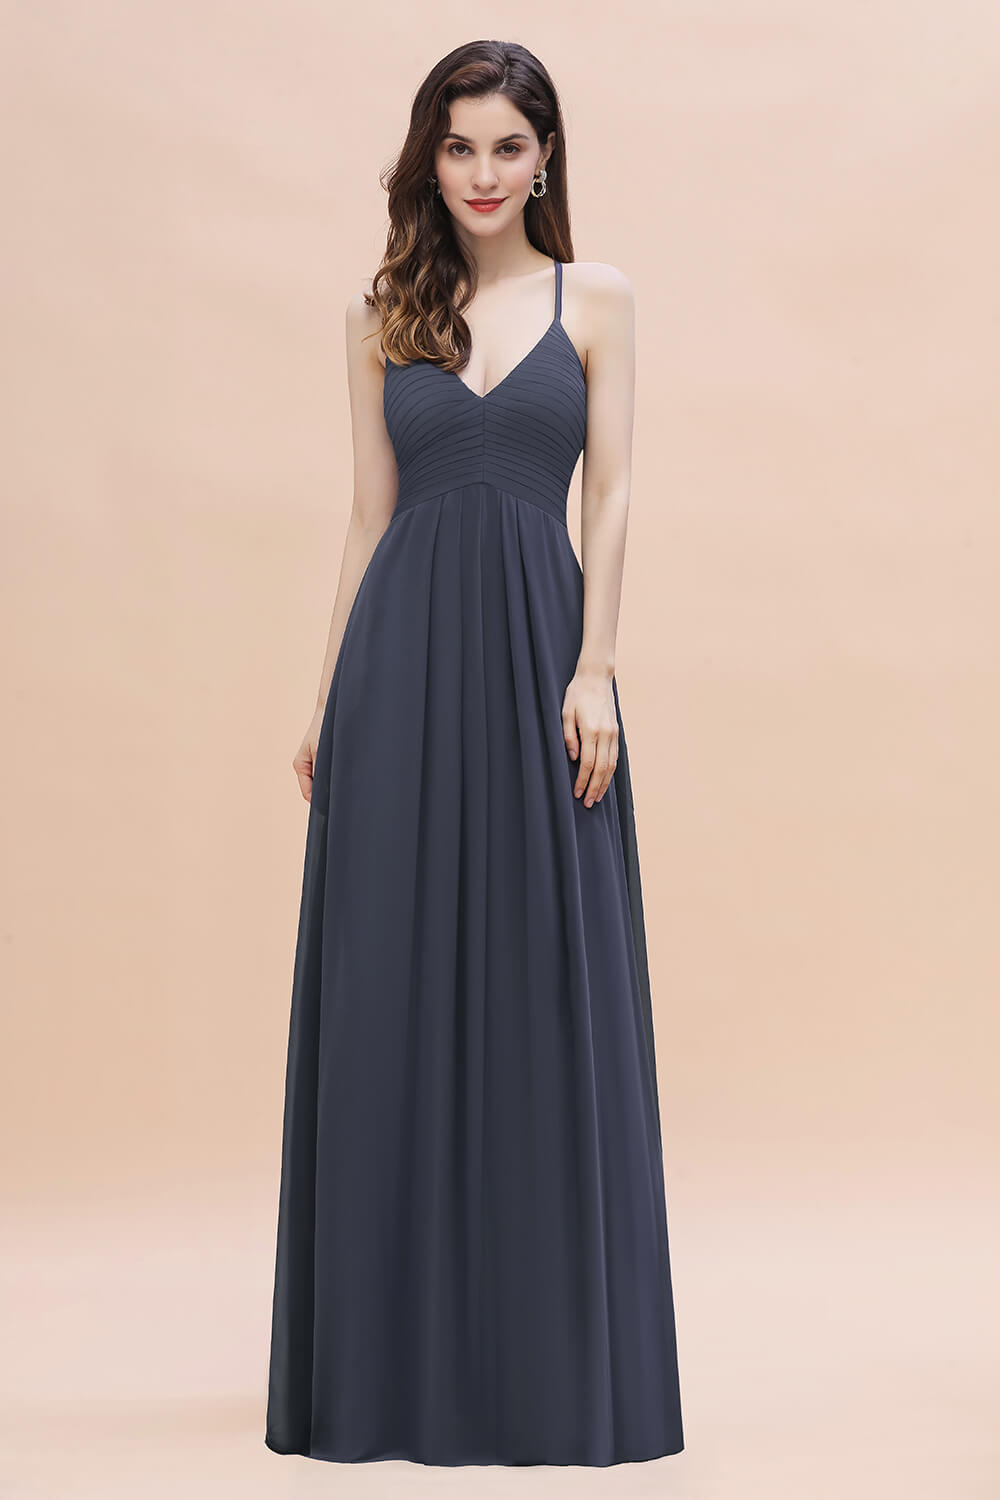 stormy bridesmaid dresses